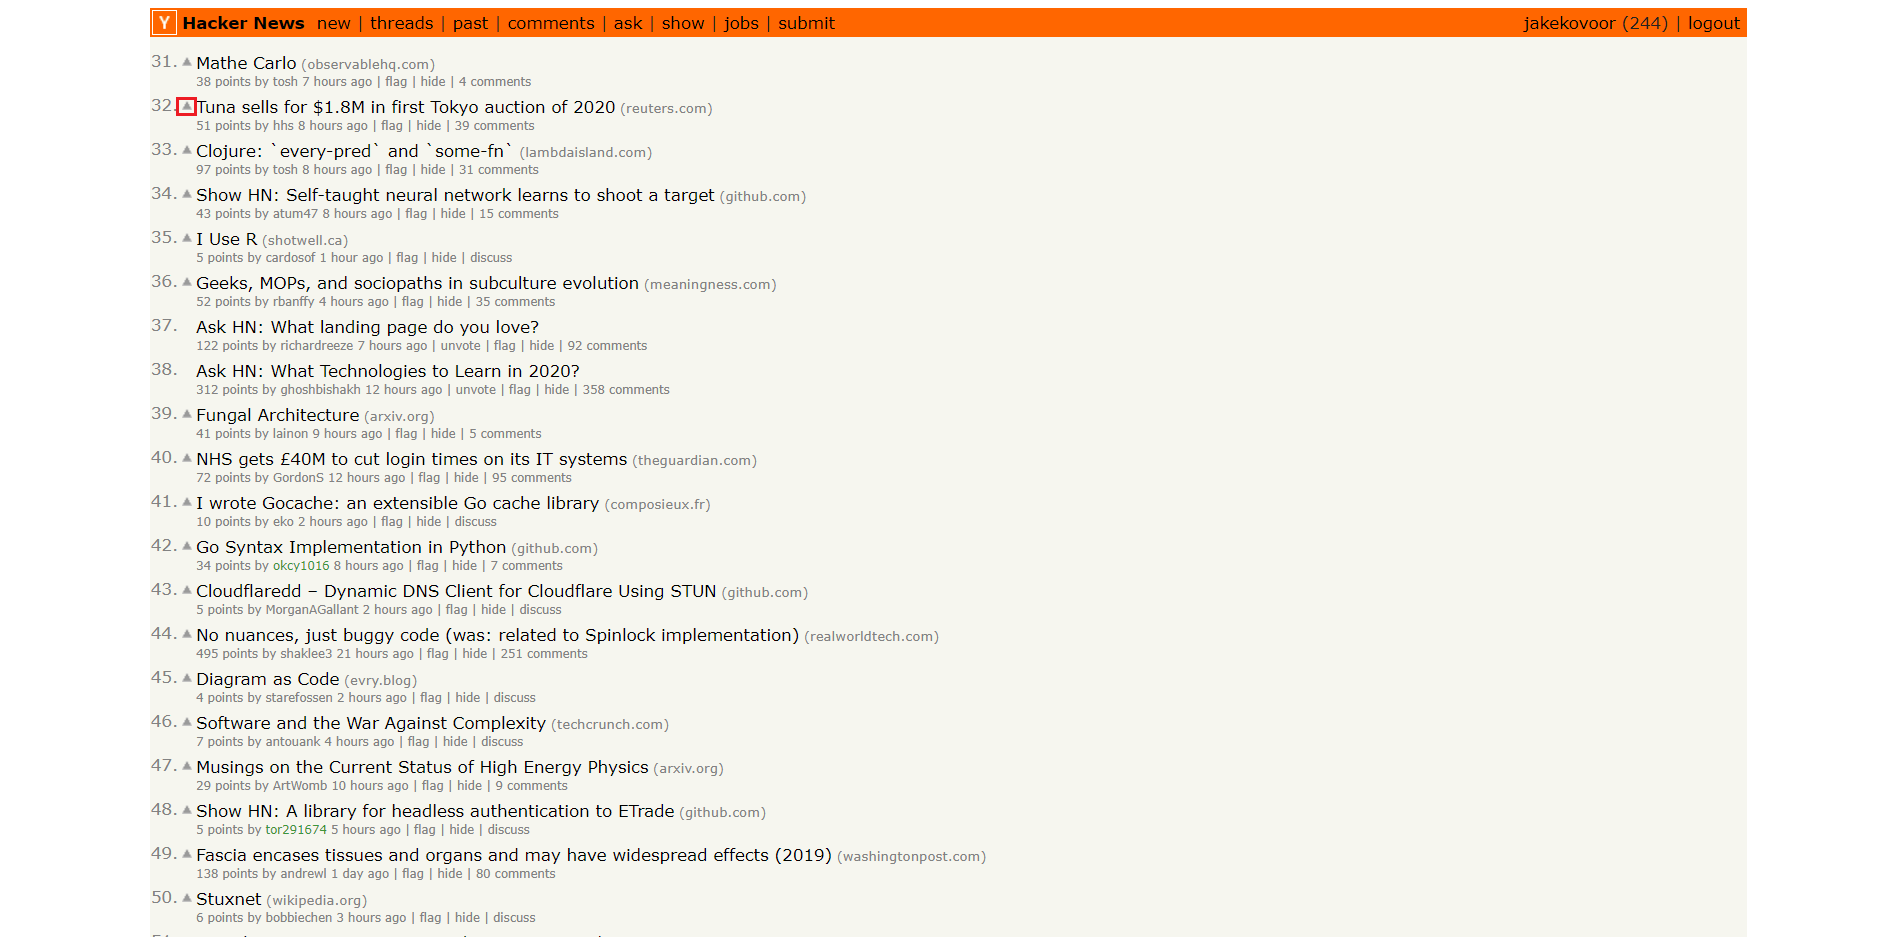 save Hacker News story